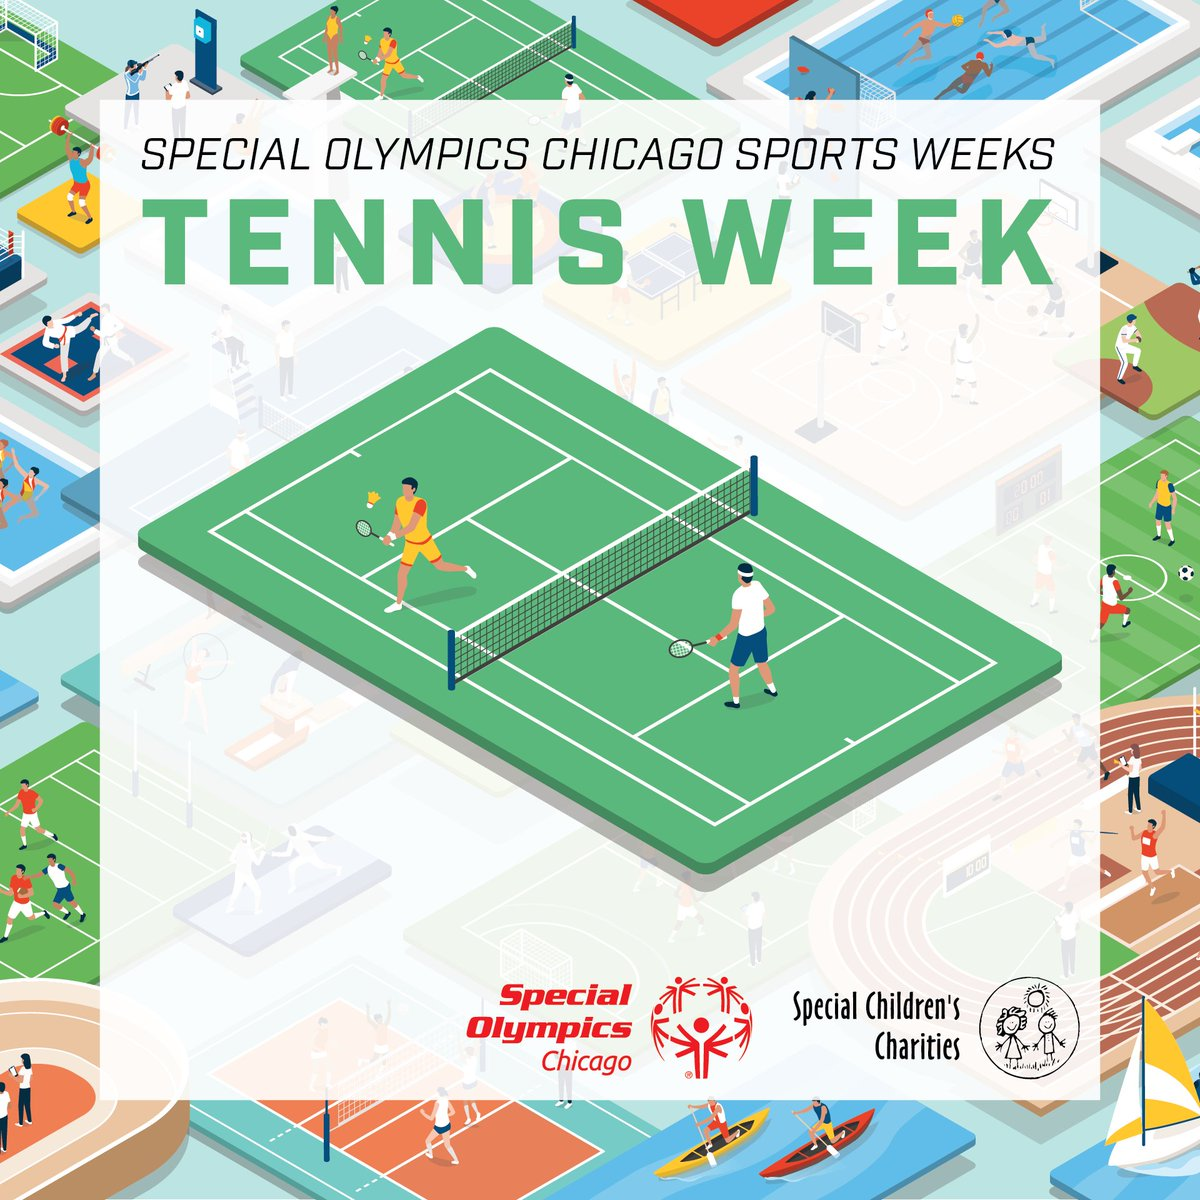 Our first sport theme week features tennis! Tennis is a popular sport played around the world at all levels of skill and by players of all ages. The goal of tennis is to use a racket to pass the ball back and forth between players across a net. https://t.co/OAeXF9lcIG